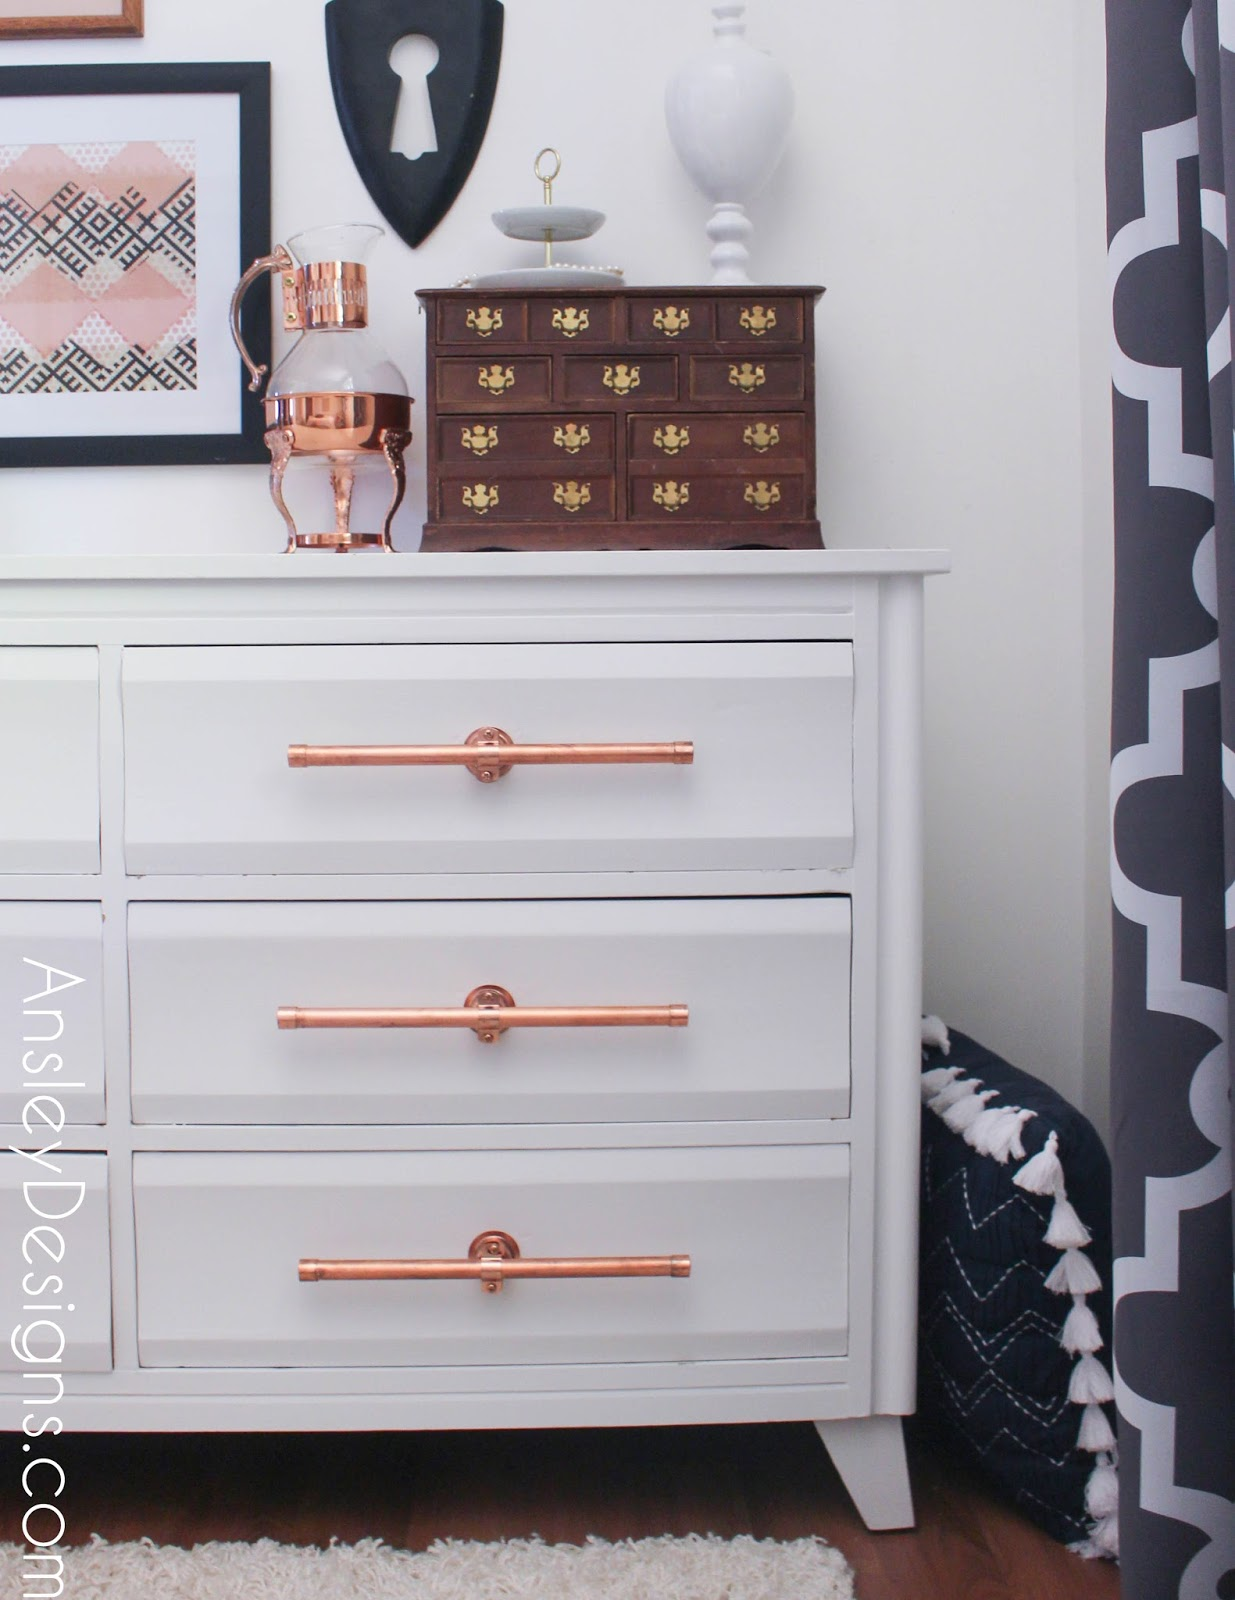 knobs plus ga drawer roselawnluran knob cabinet hardware copper grande lights ue pulls harmon gray with